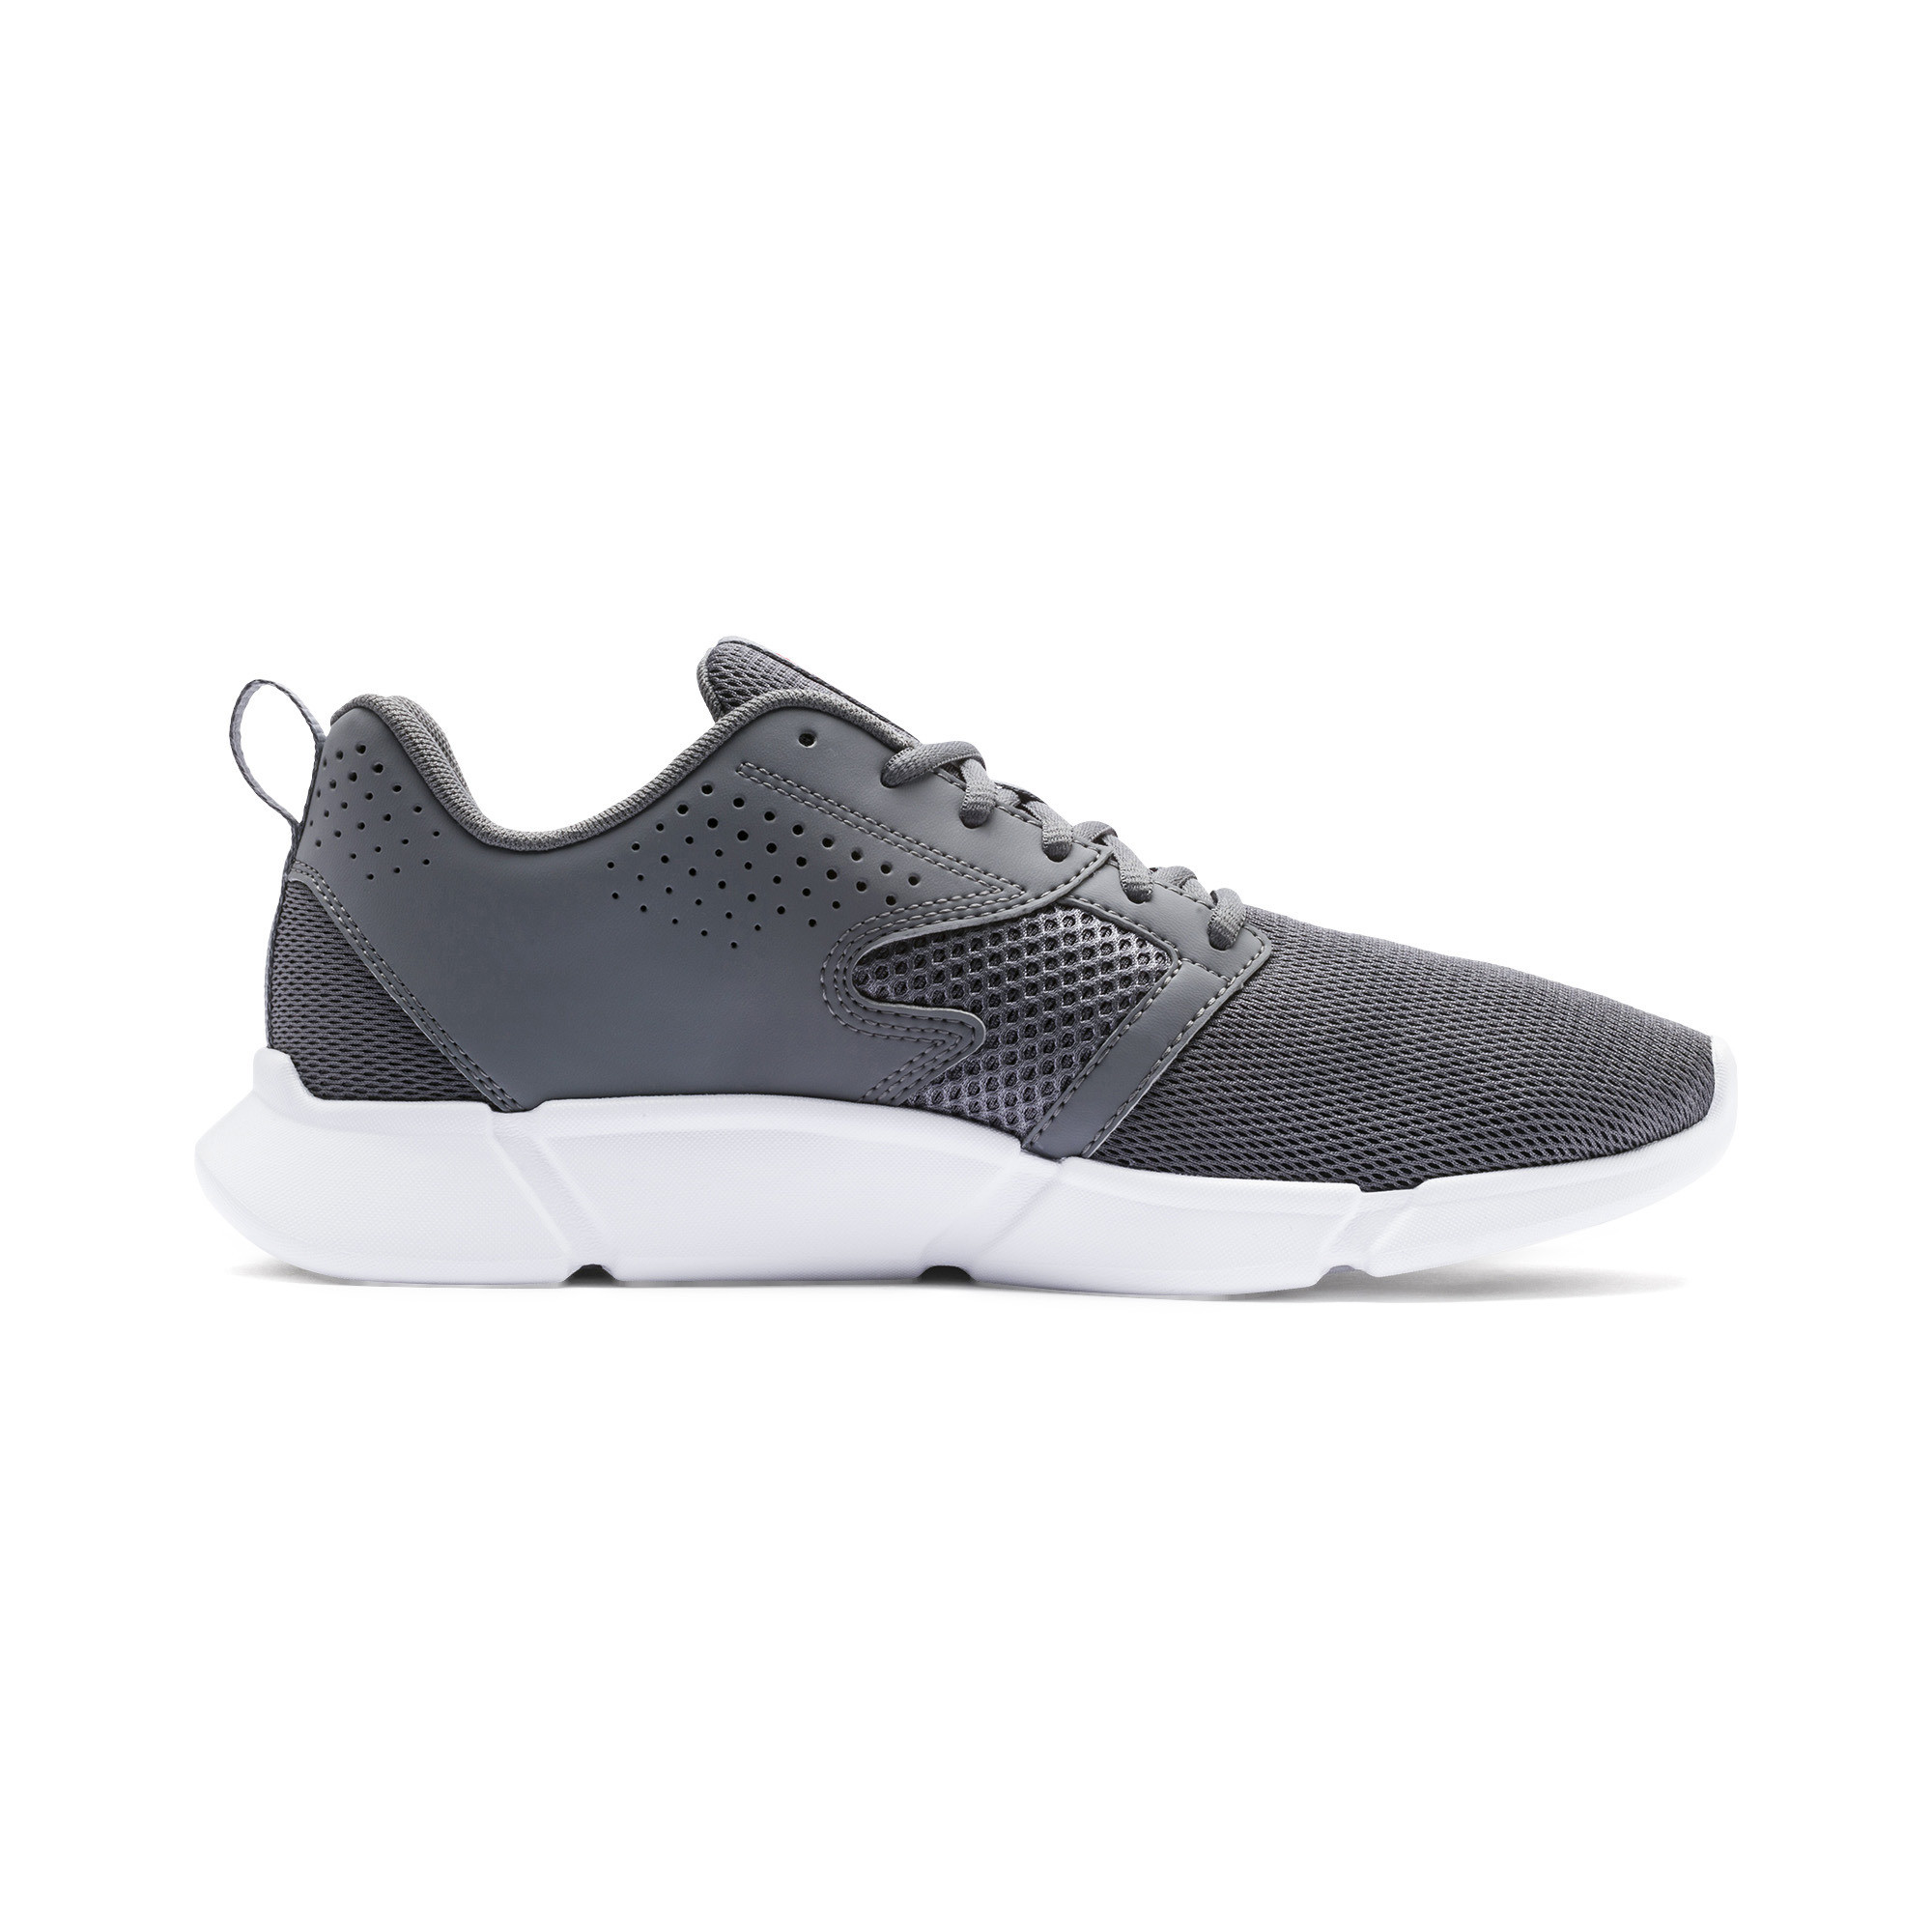 PUMA-INTERFLEX-Modern-Men-039-s-Sneakers-Unisex-Shoe-Running thumbnail 27